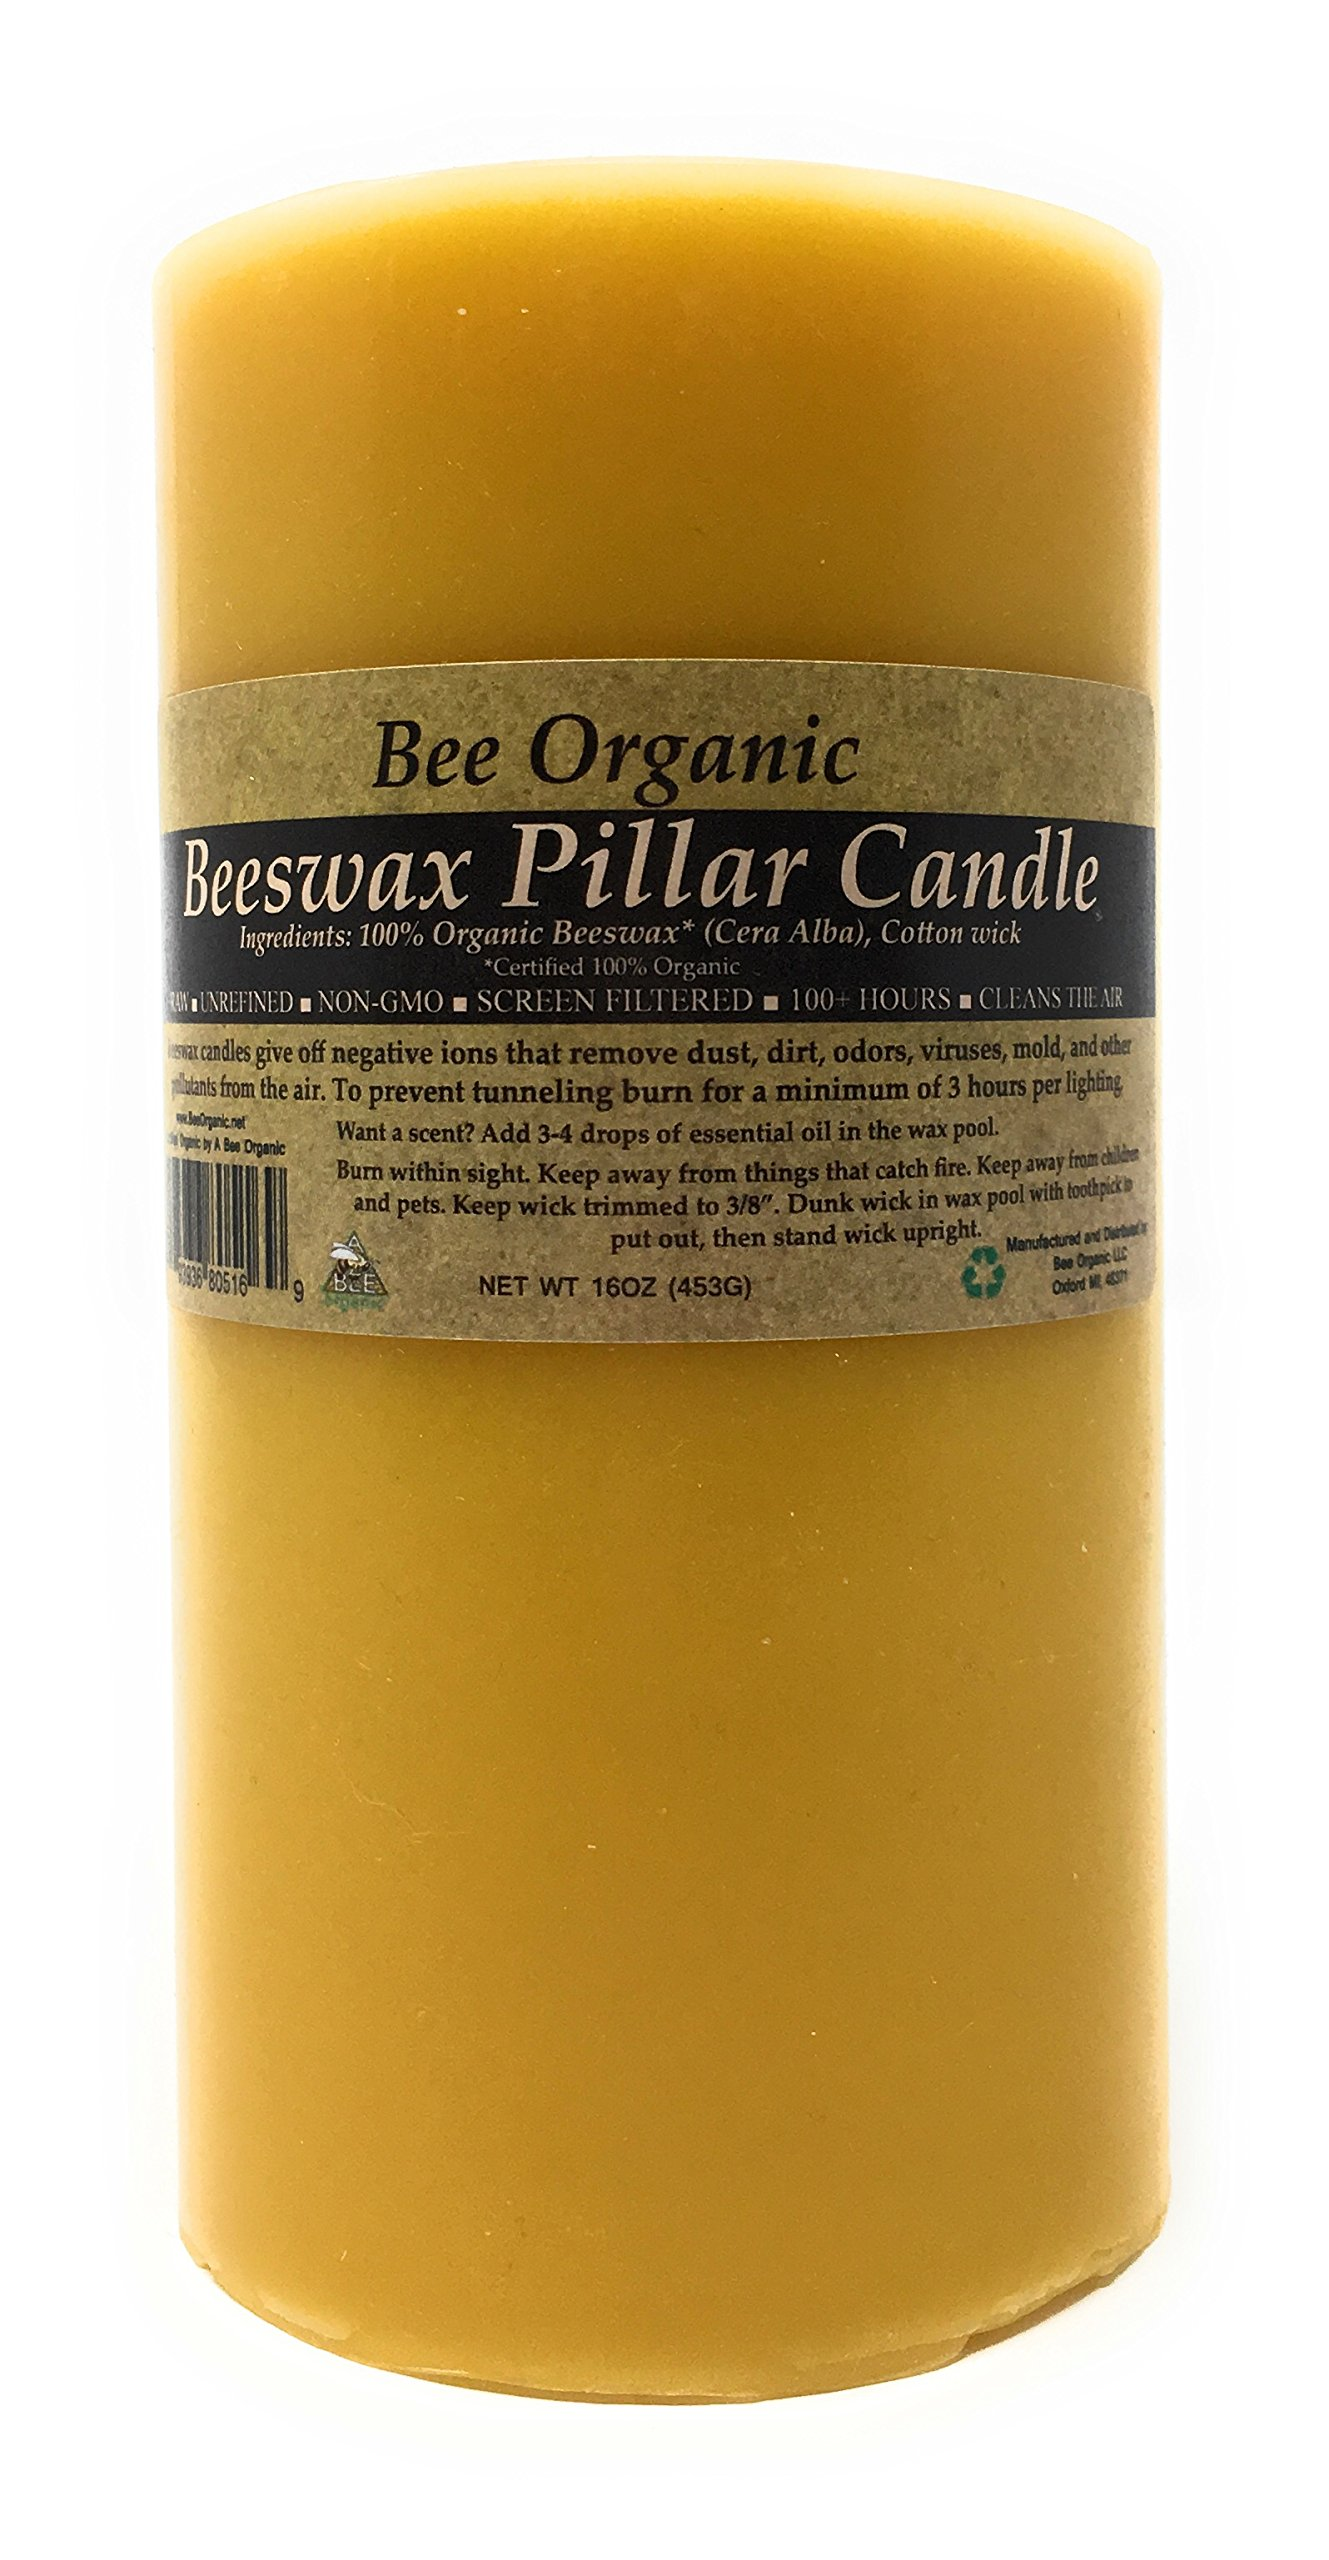 100% Organic Beeswax Pillar Candle, Non-GMO, Raw, Unrefined and Screen Filtered. Unbleached Cotton Wick. (3 x 6) by Bee Organic (Image #1)